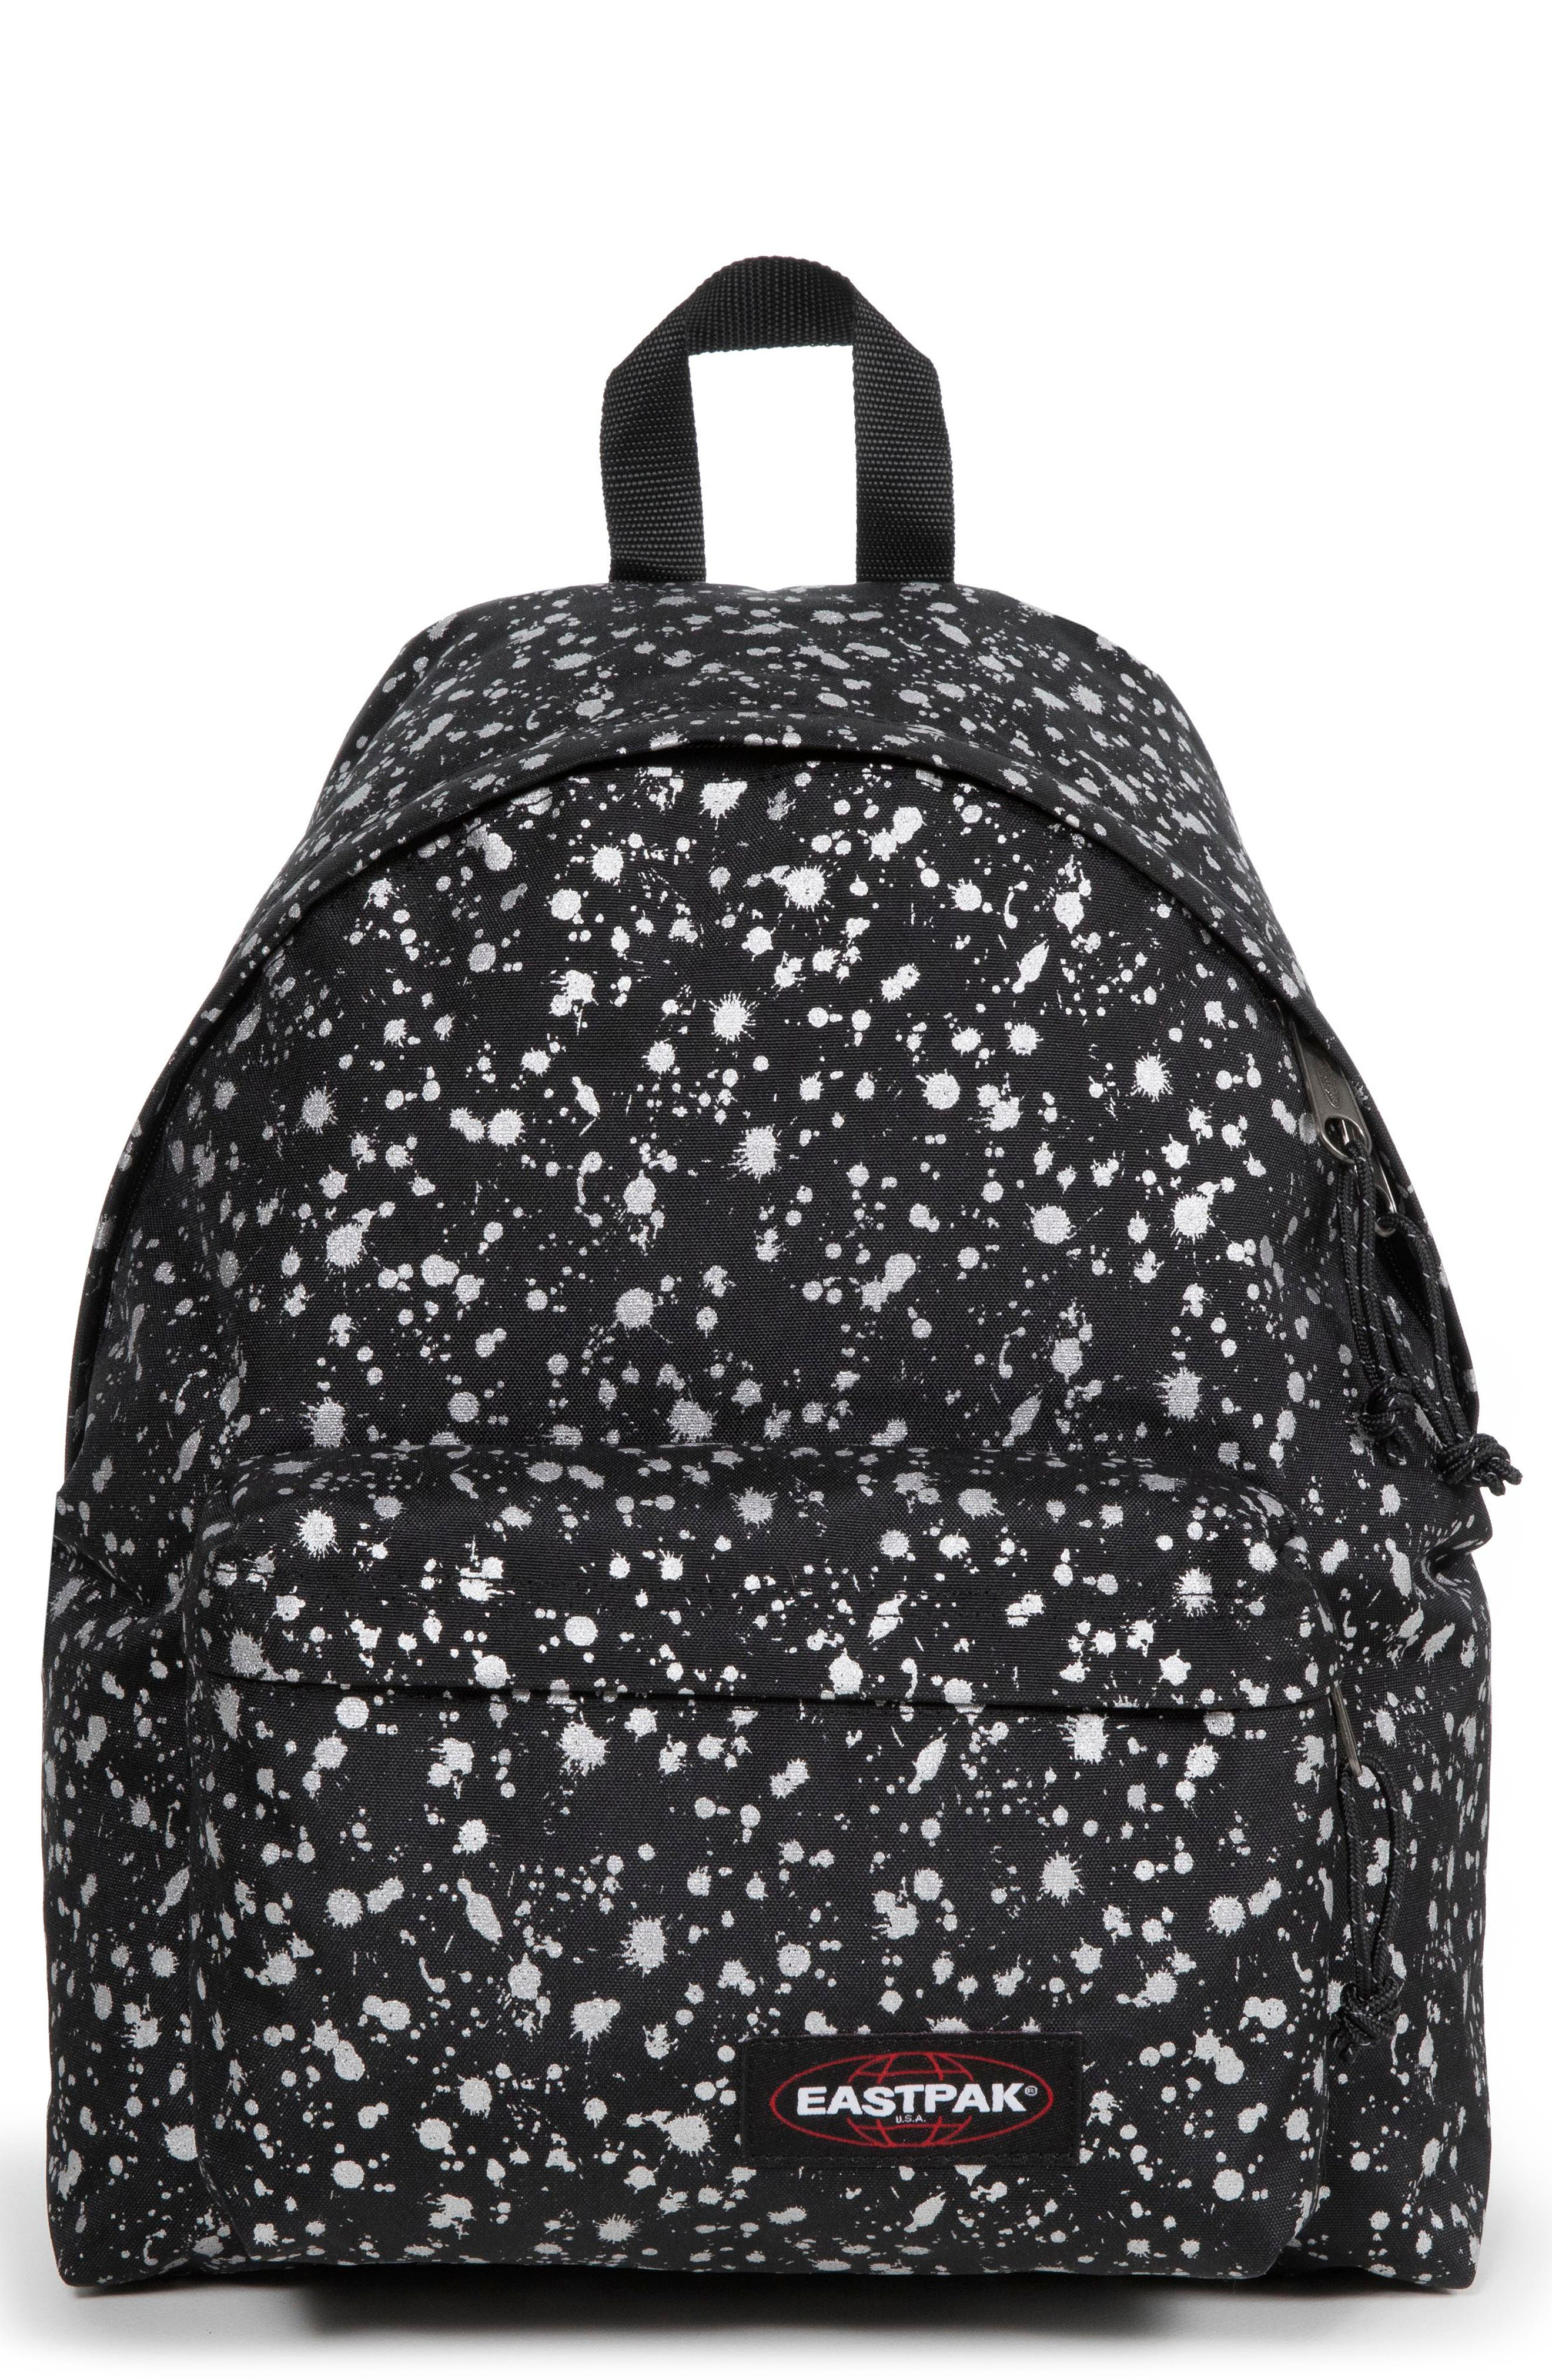 Padded Pak'r<sup>®</sup> Mist Canvas Backpack,                             Main thumbnail 1, color,                             SILVER MIST